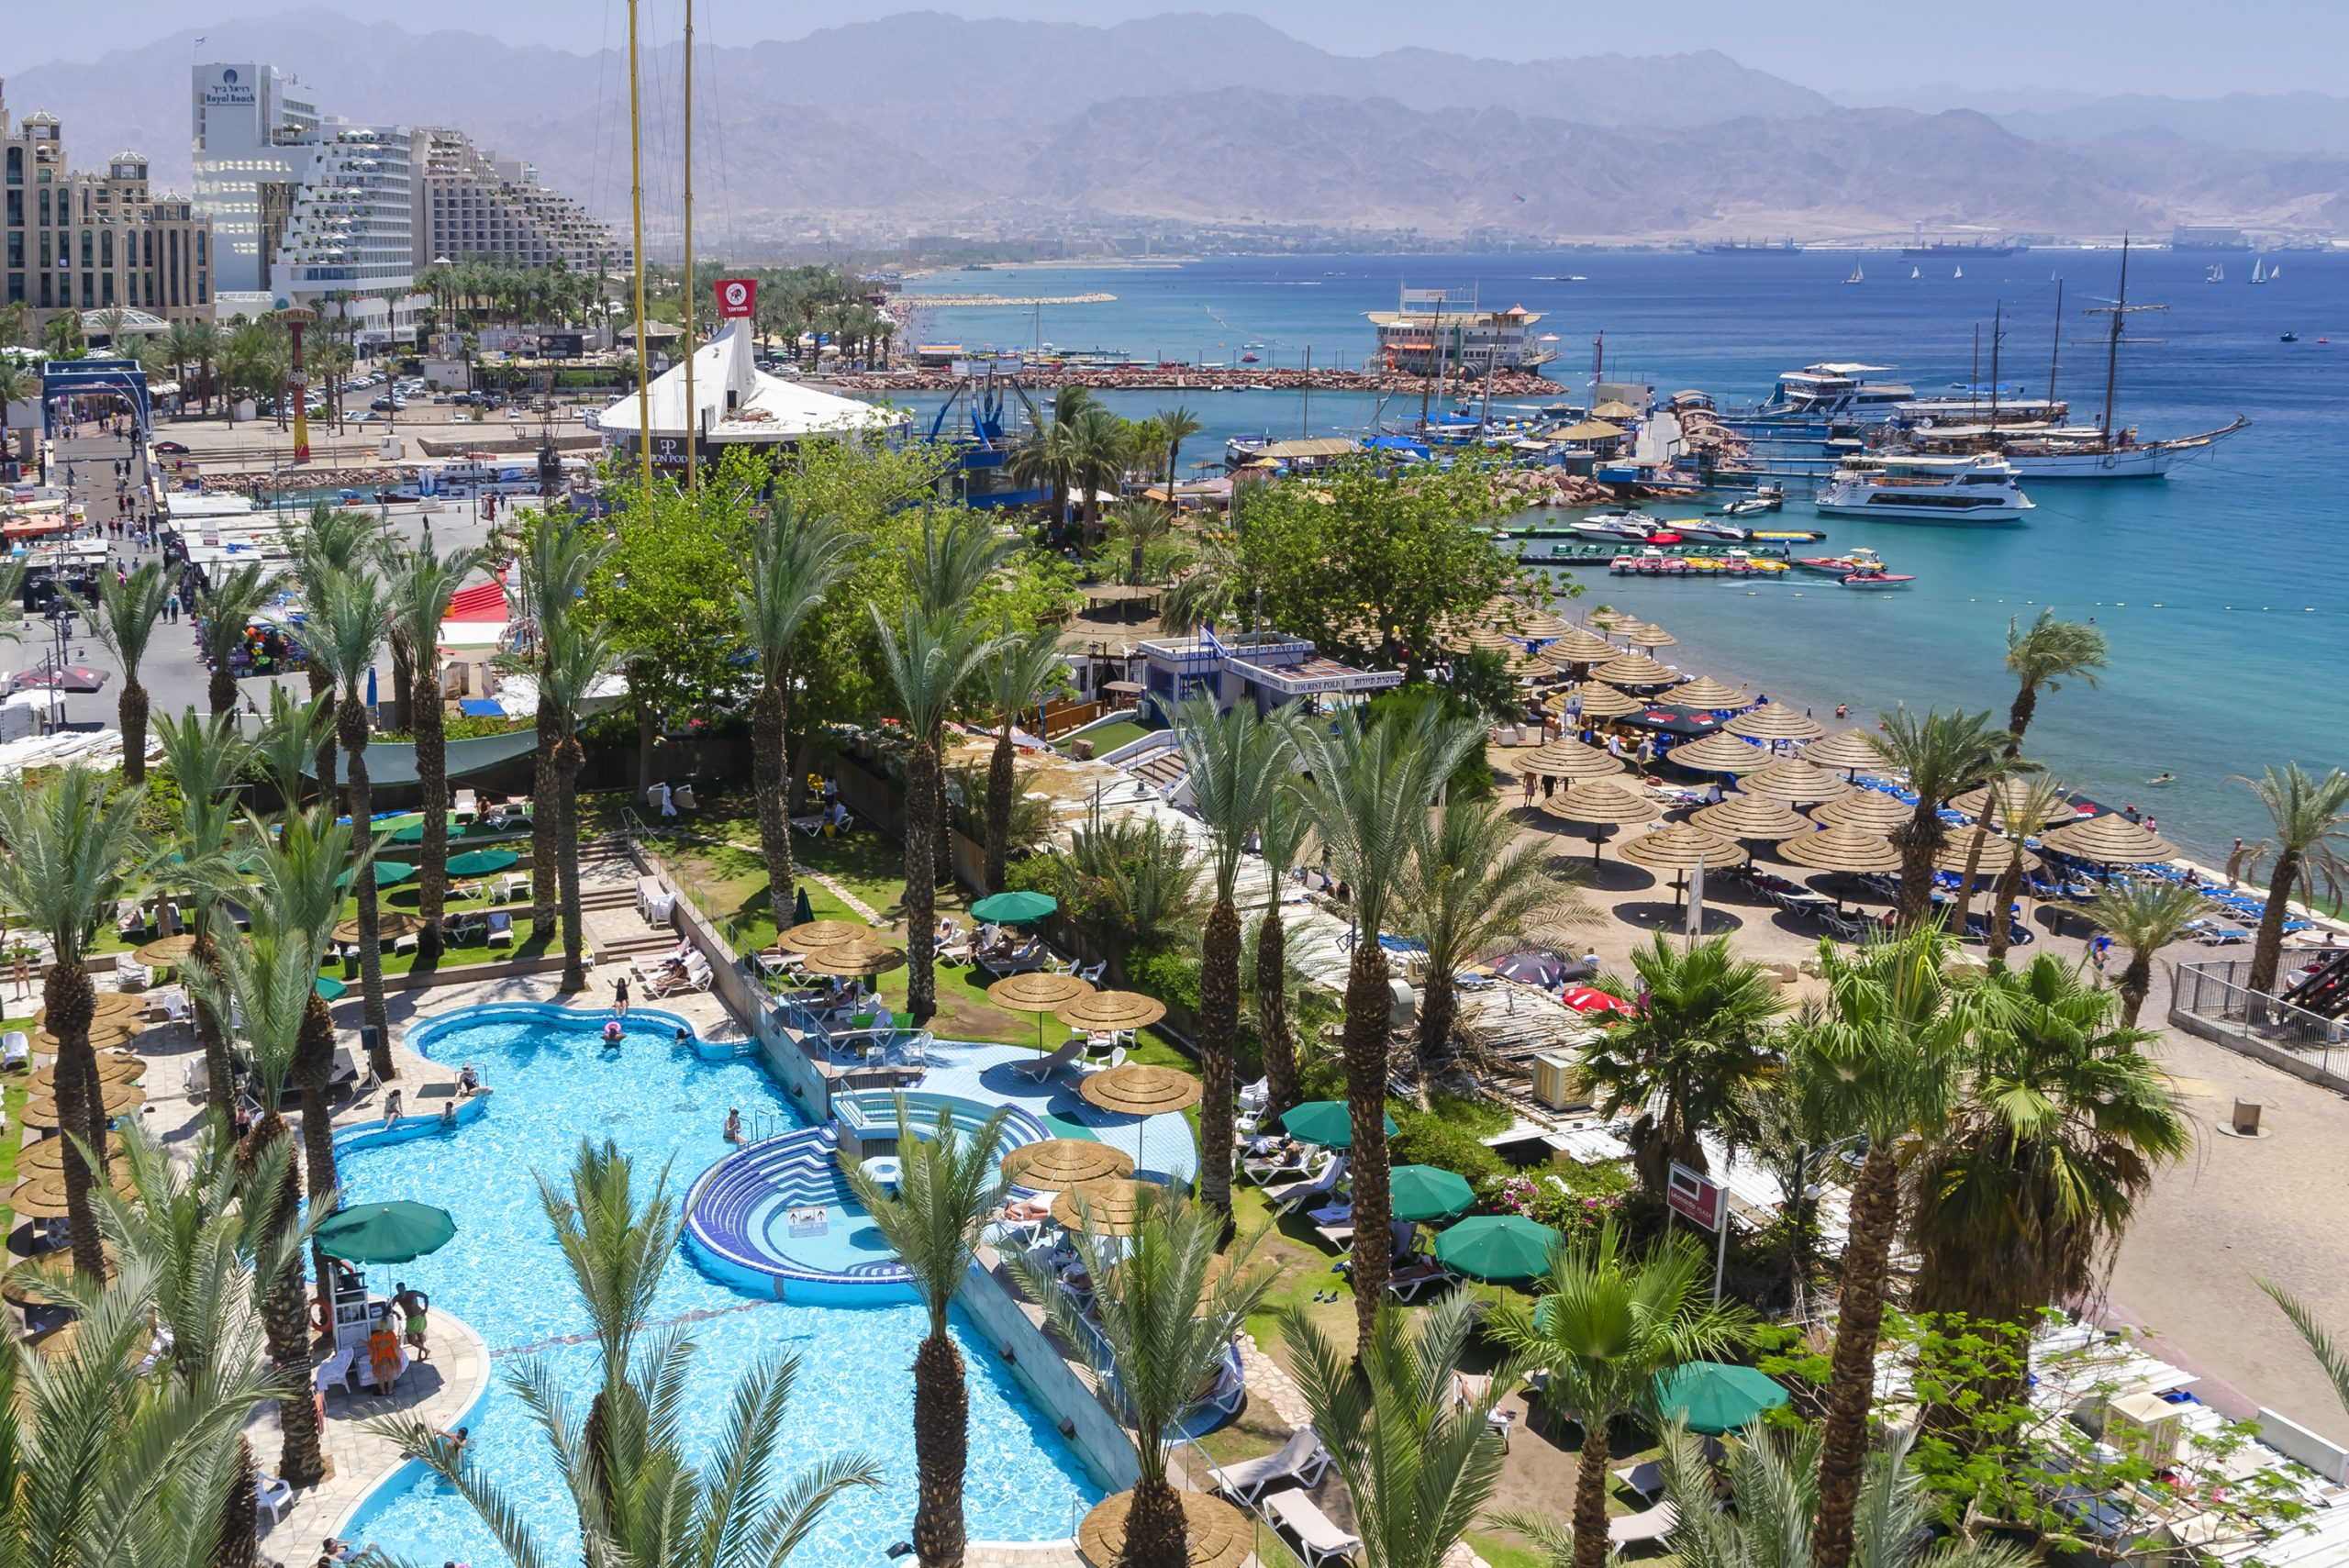 The Central beach and marina in Eilat, Israel